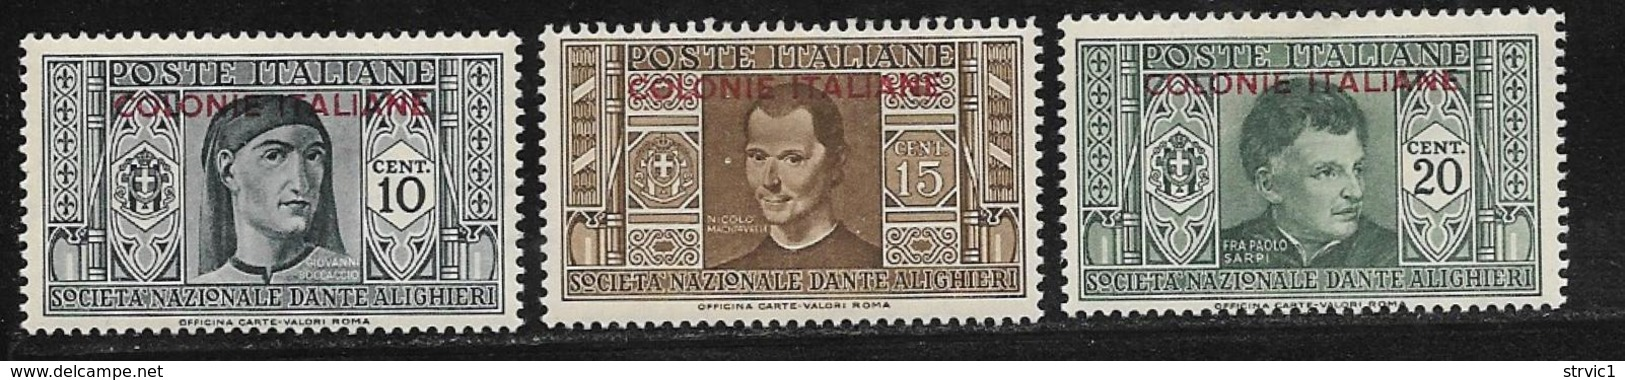 Italian Colonies Scott # 1-3 Mint Hinged Italy Dante Issue Overprinted, 1932 - General Issues